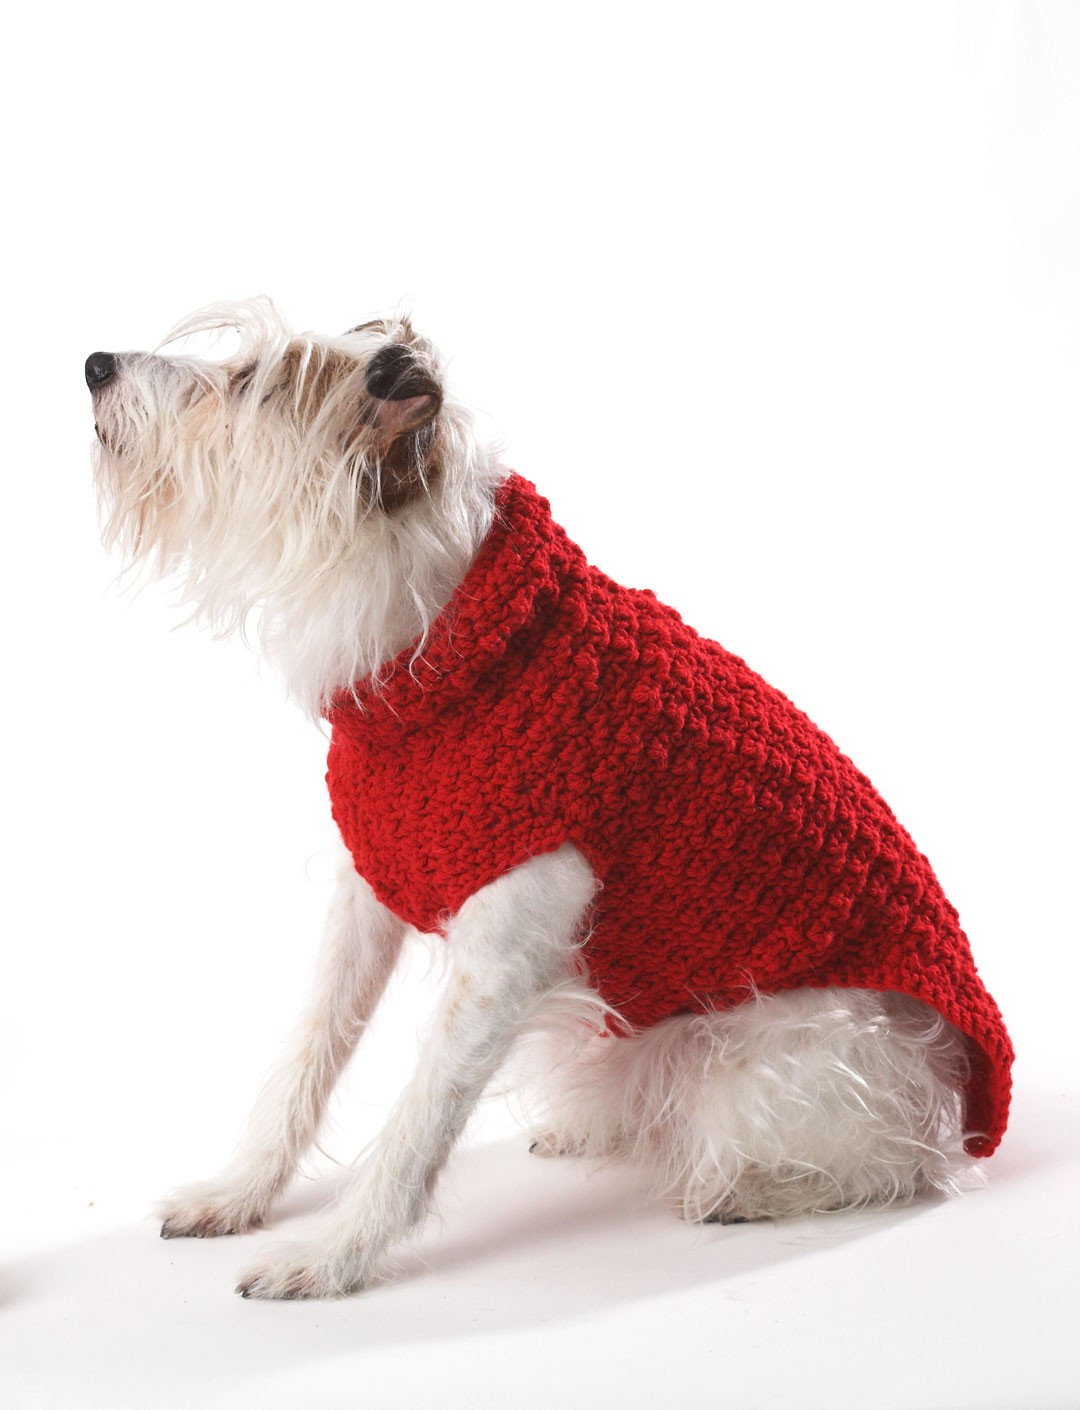 Crochet Dog Coat Pattern Fresh Bernat Crochet Dog Coat Crochet Pattern Of Marvelous 41 Photos Crochet Dog Coat Pattern